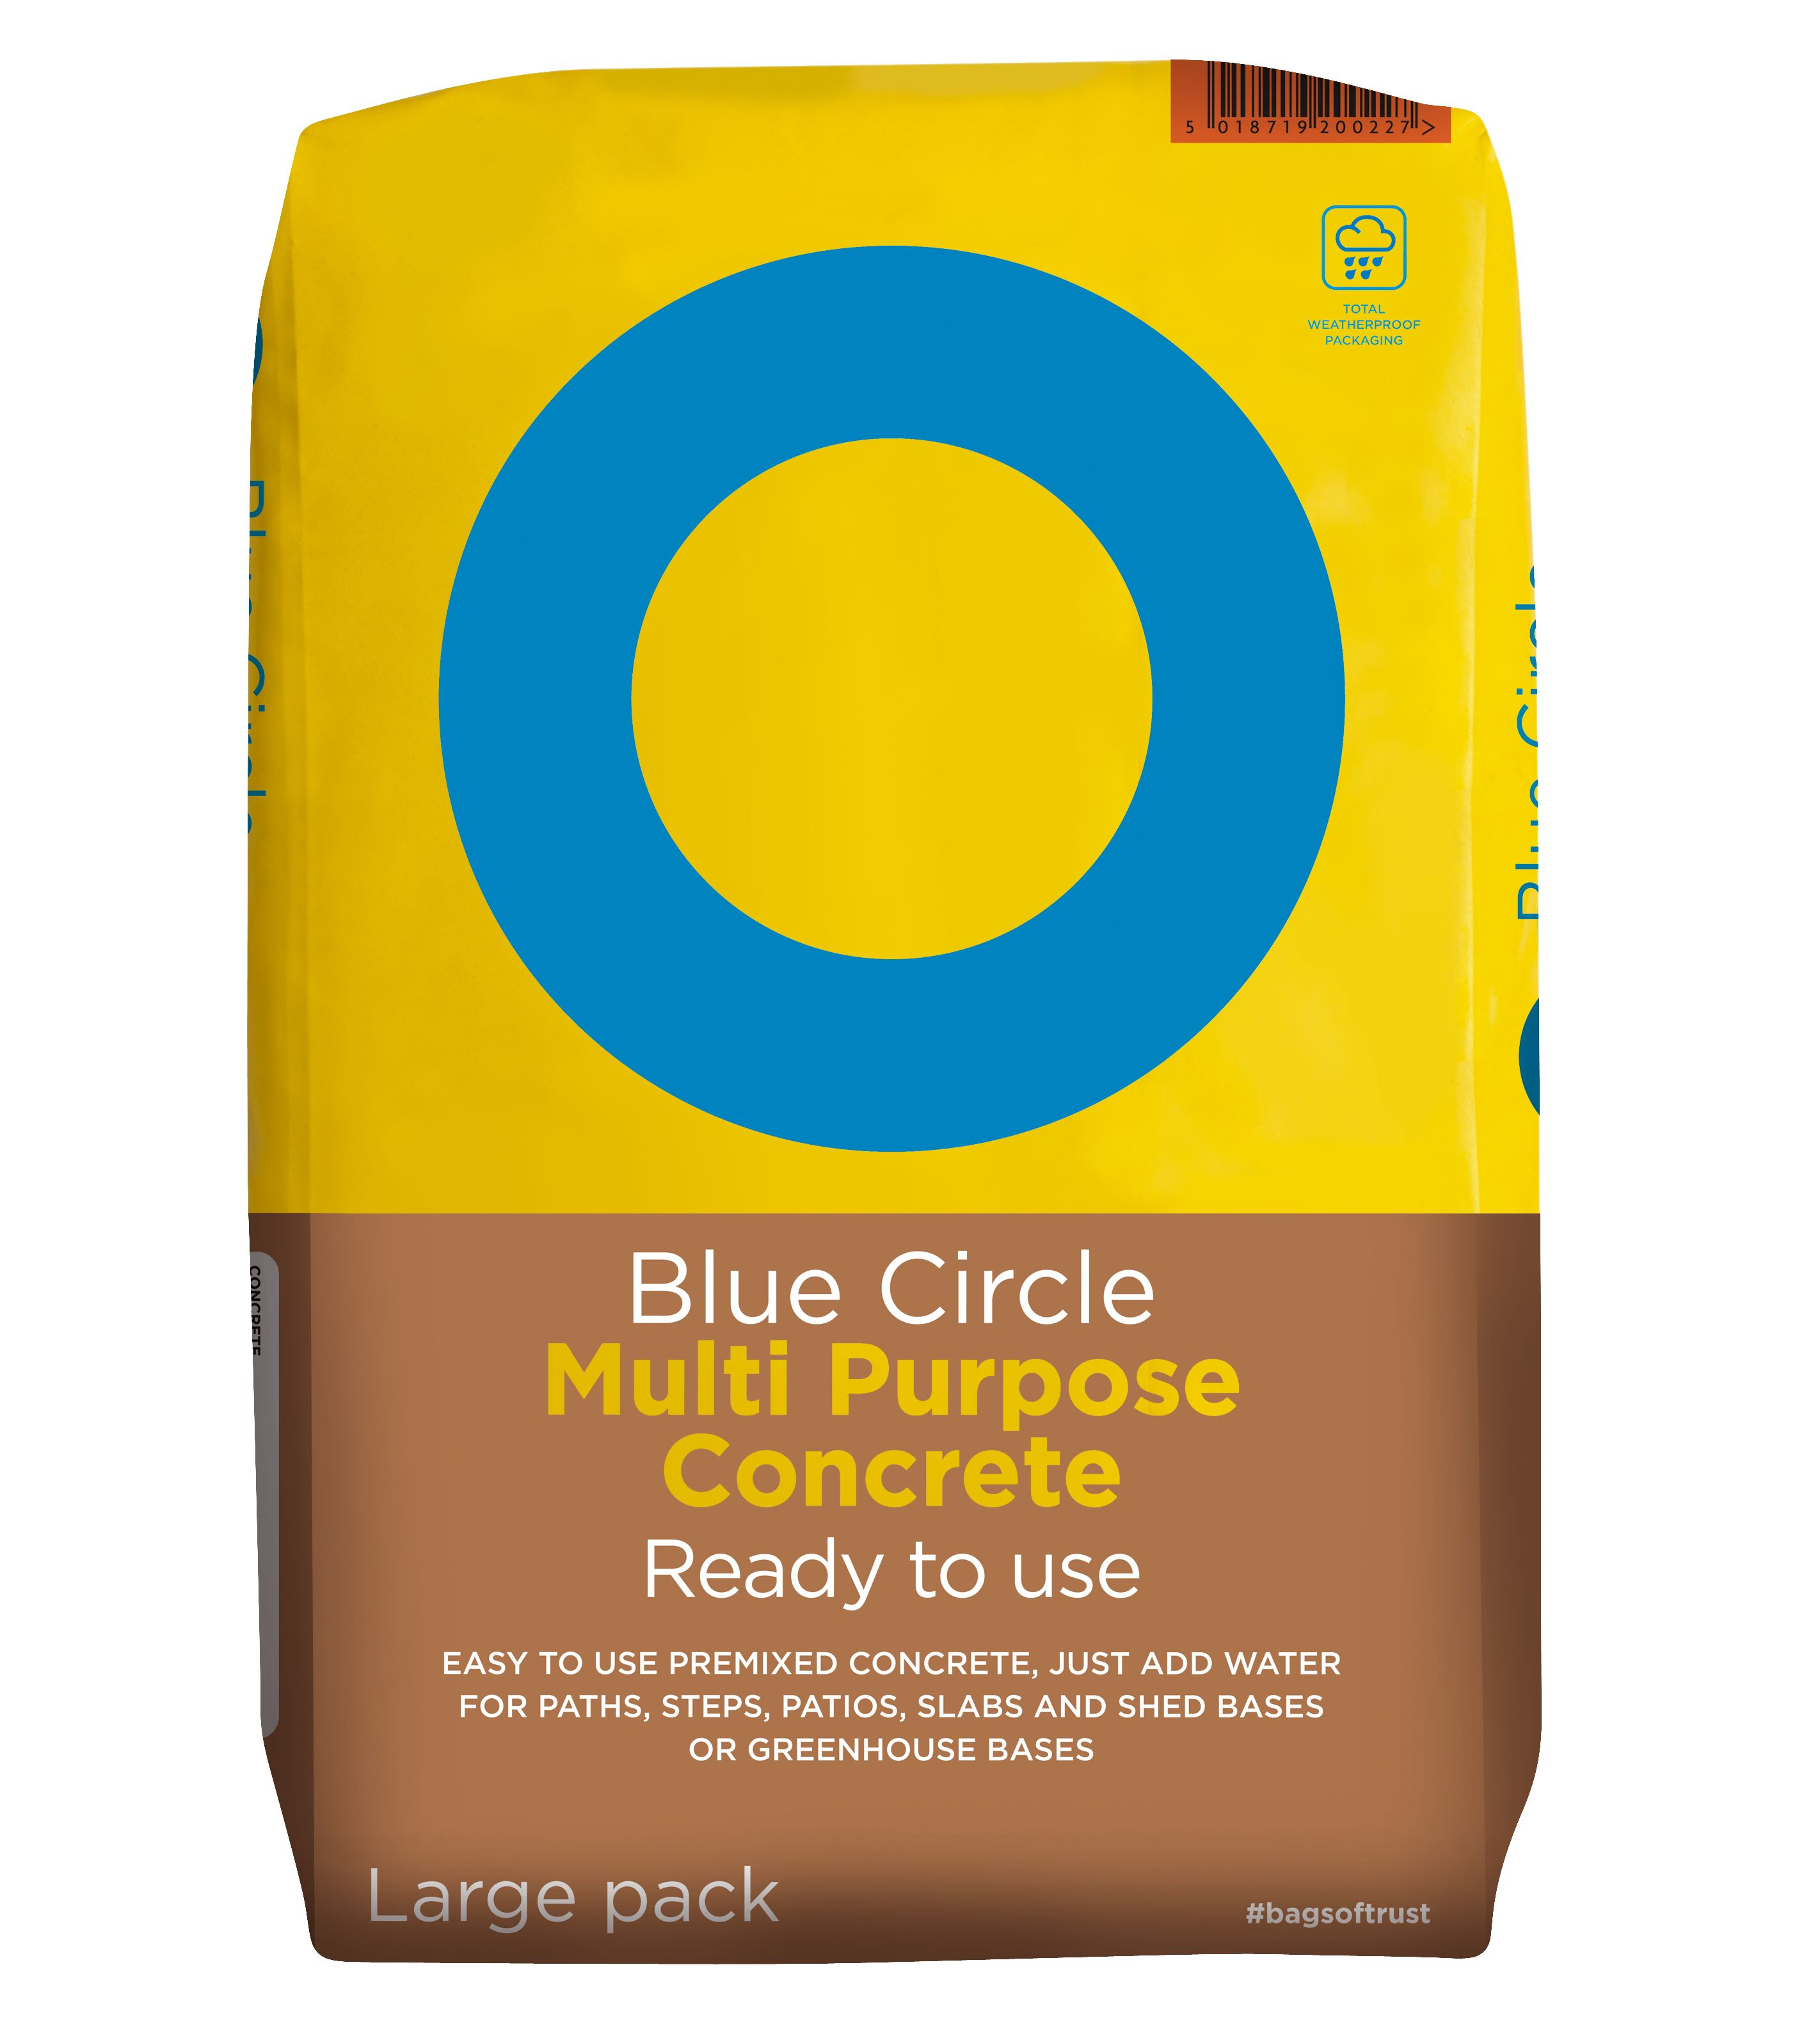 Vacs And Videos >> Blue Circle Multi Purpose Ready to use Concrete 20kg Bag | Departments | DIY at B&Q